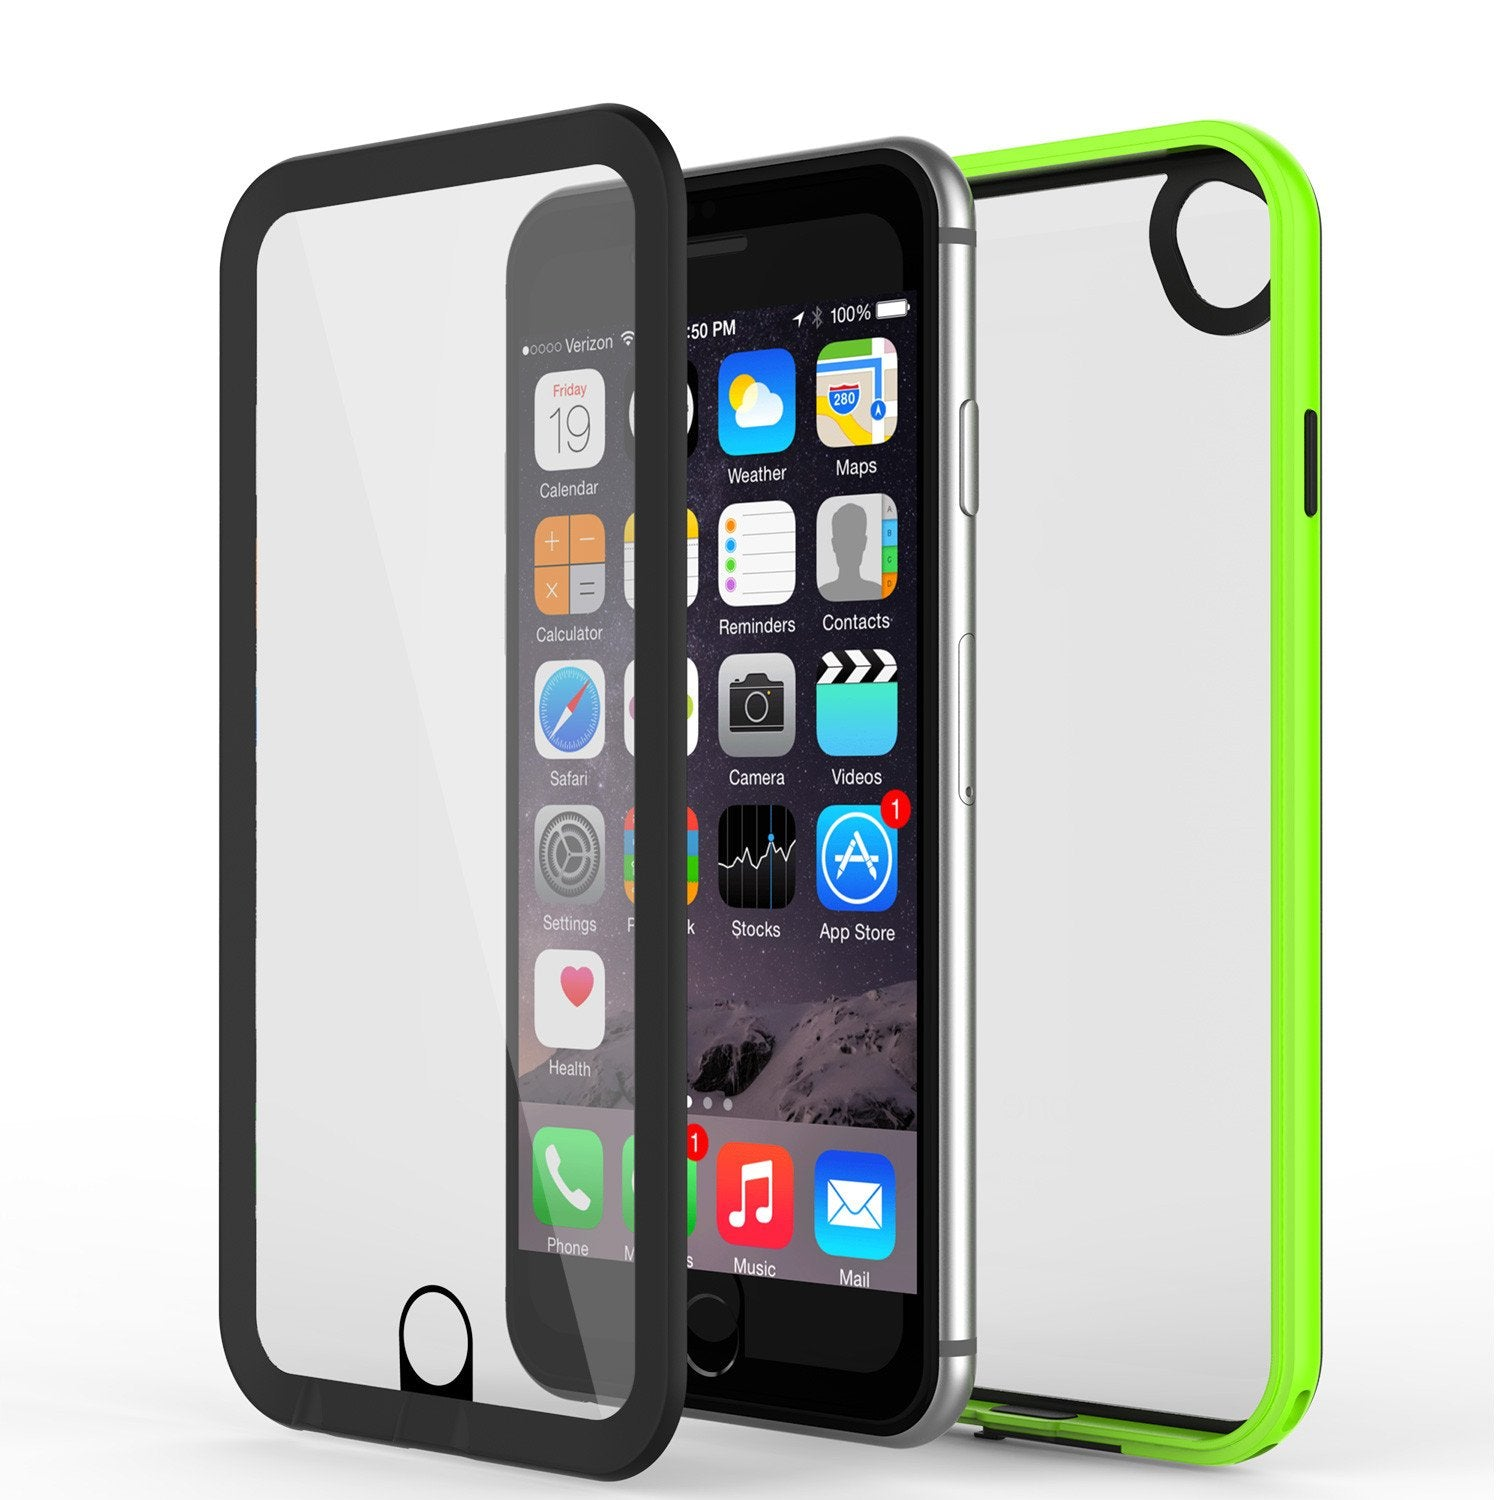 Apple iPhone 7 Waterproof Case, PUNKcase CRYSTAL 2.0 Light Green  W/ Attached Screen Protector  | Warranty - PunkCase NZ